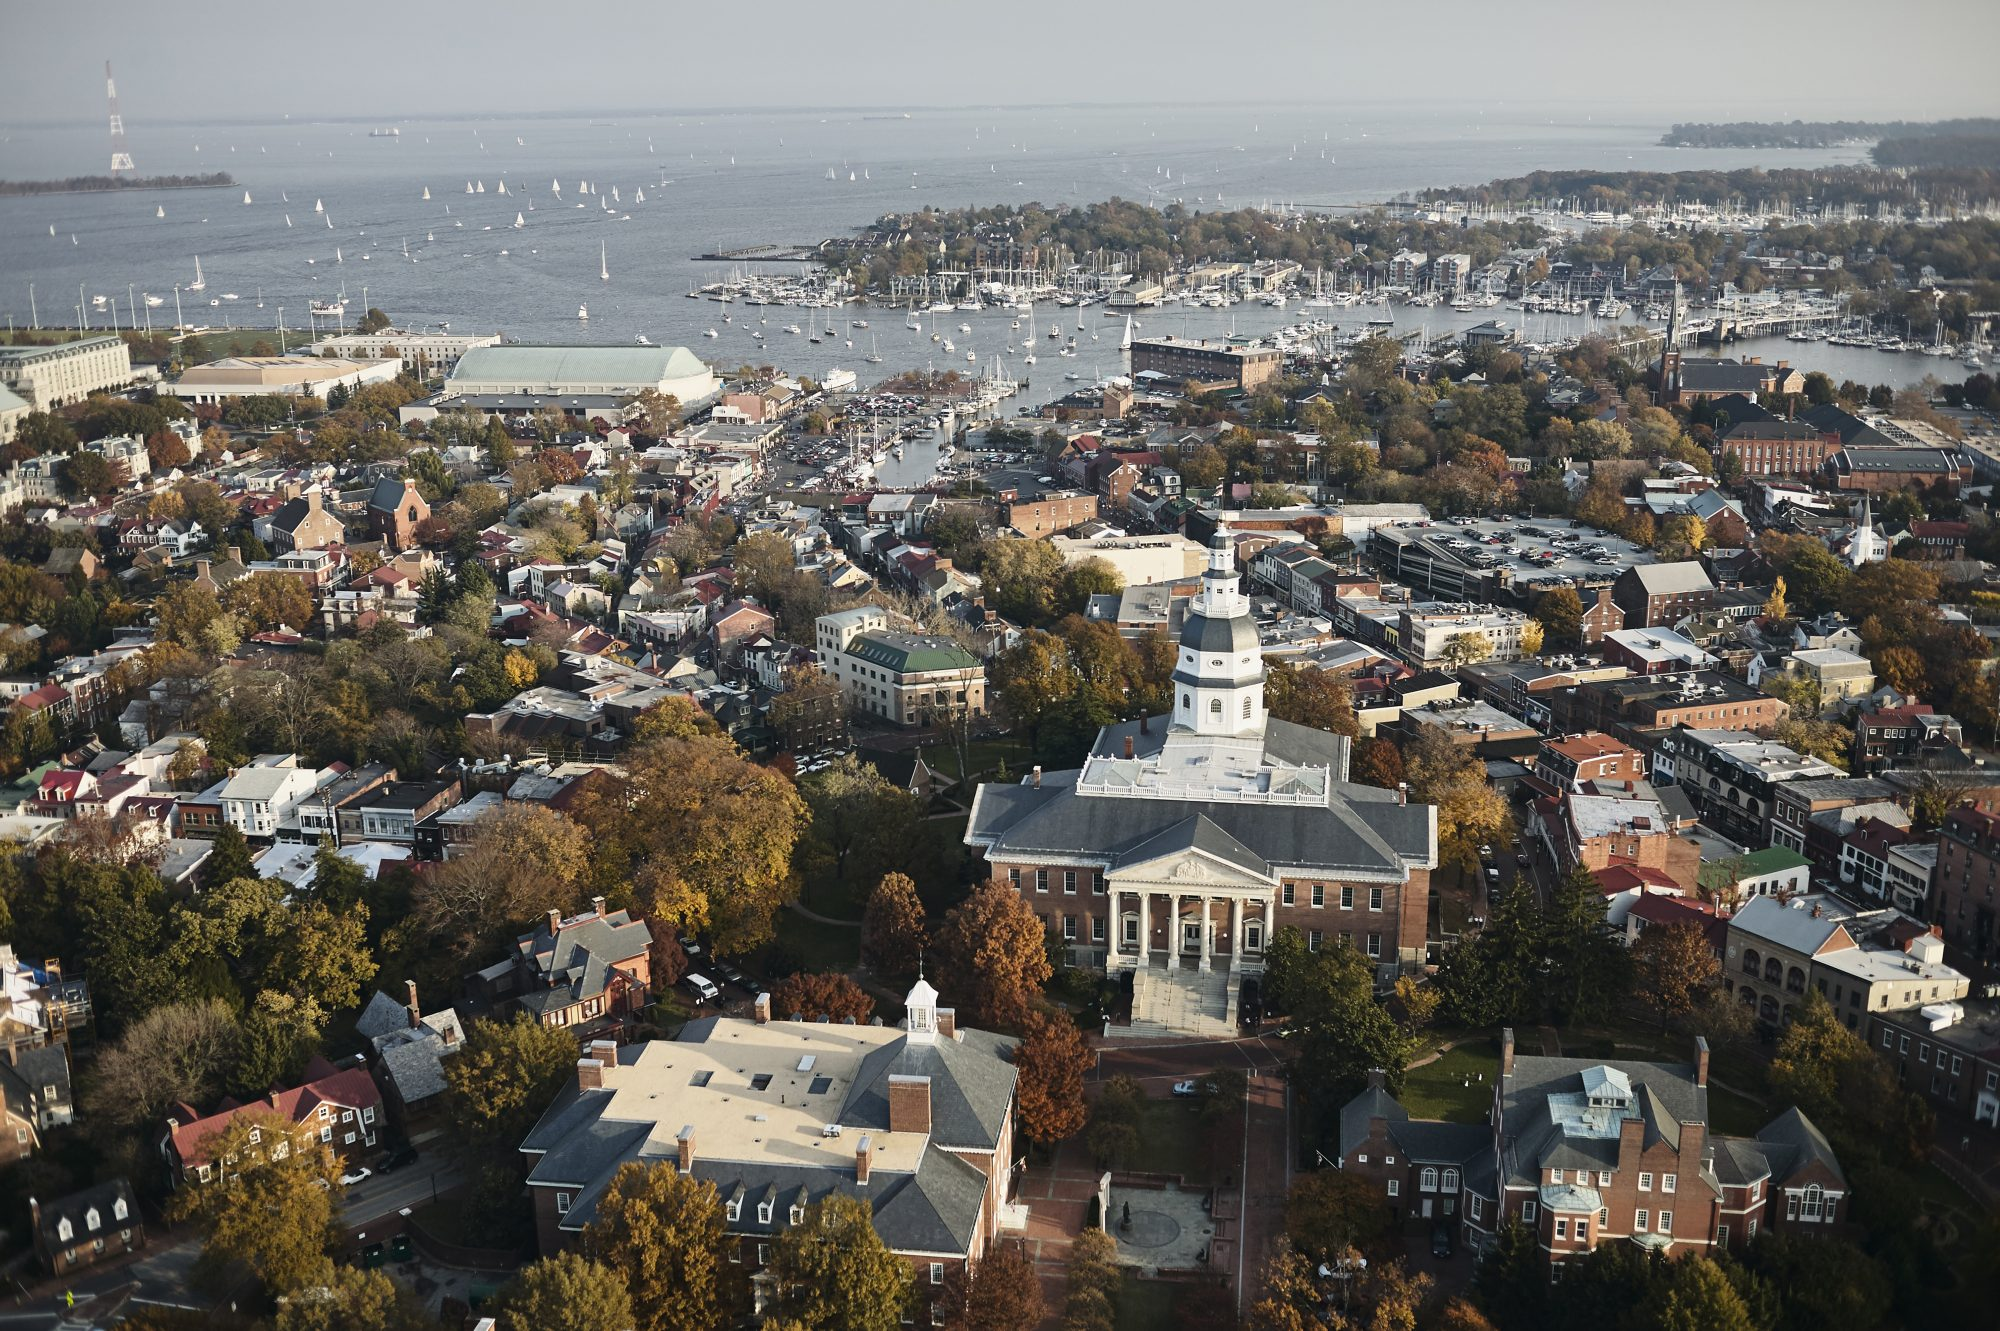 17. Annapolis, Maryland